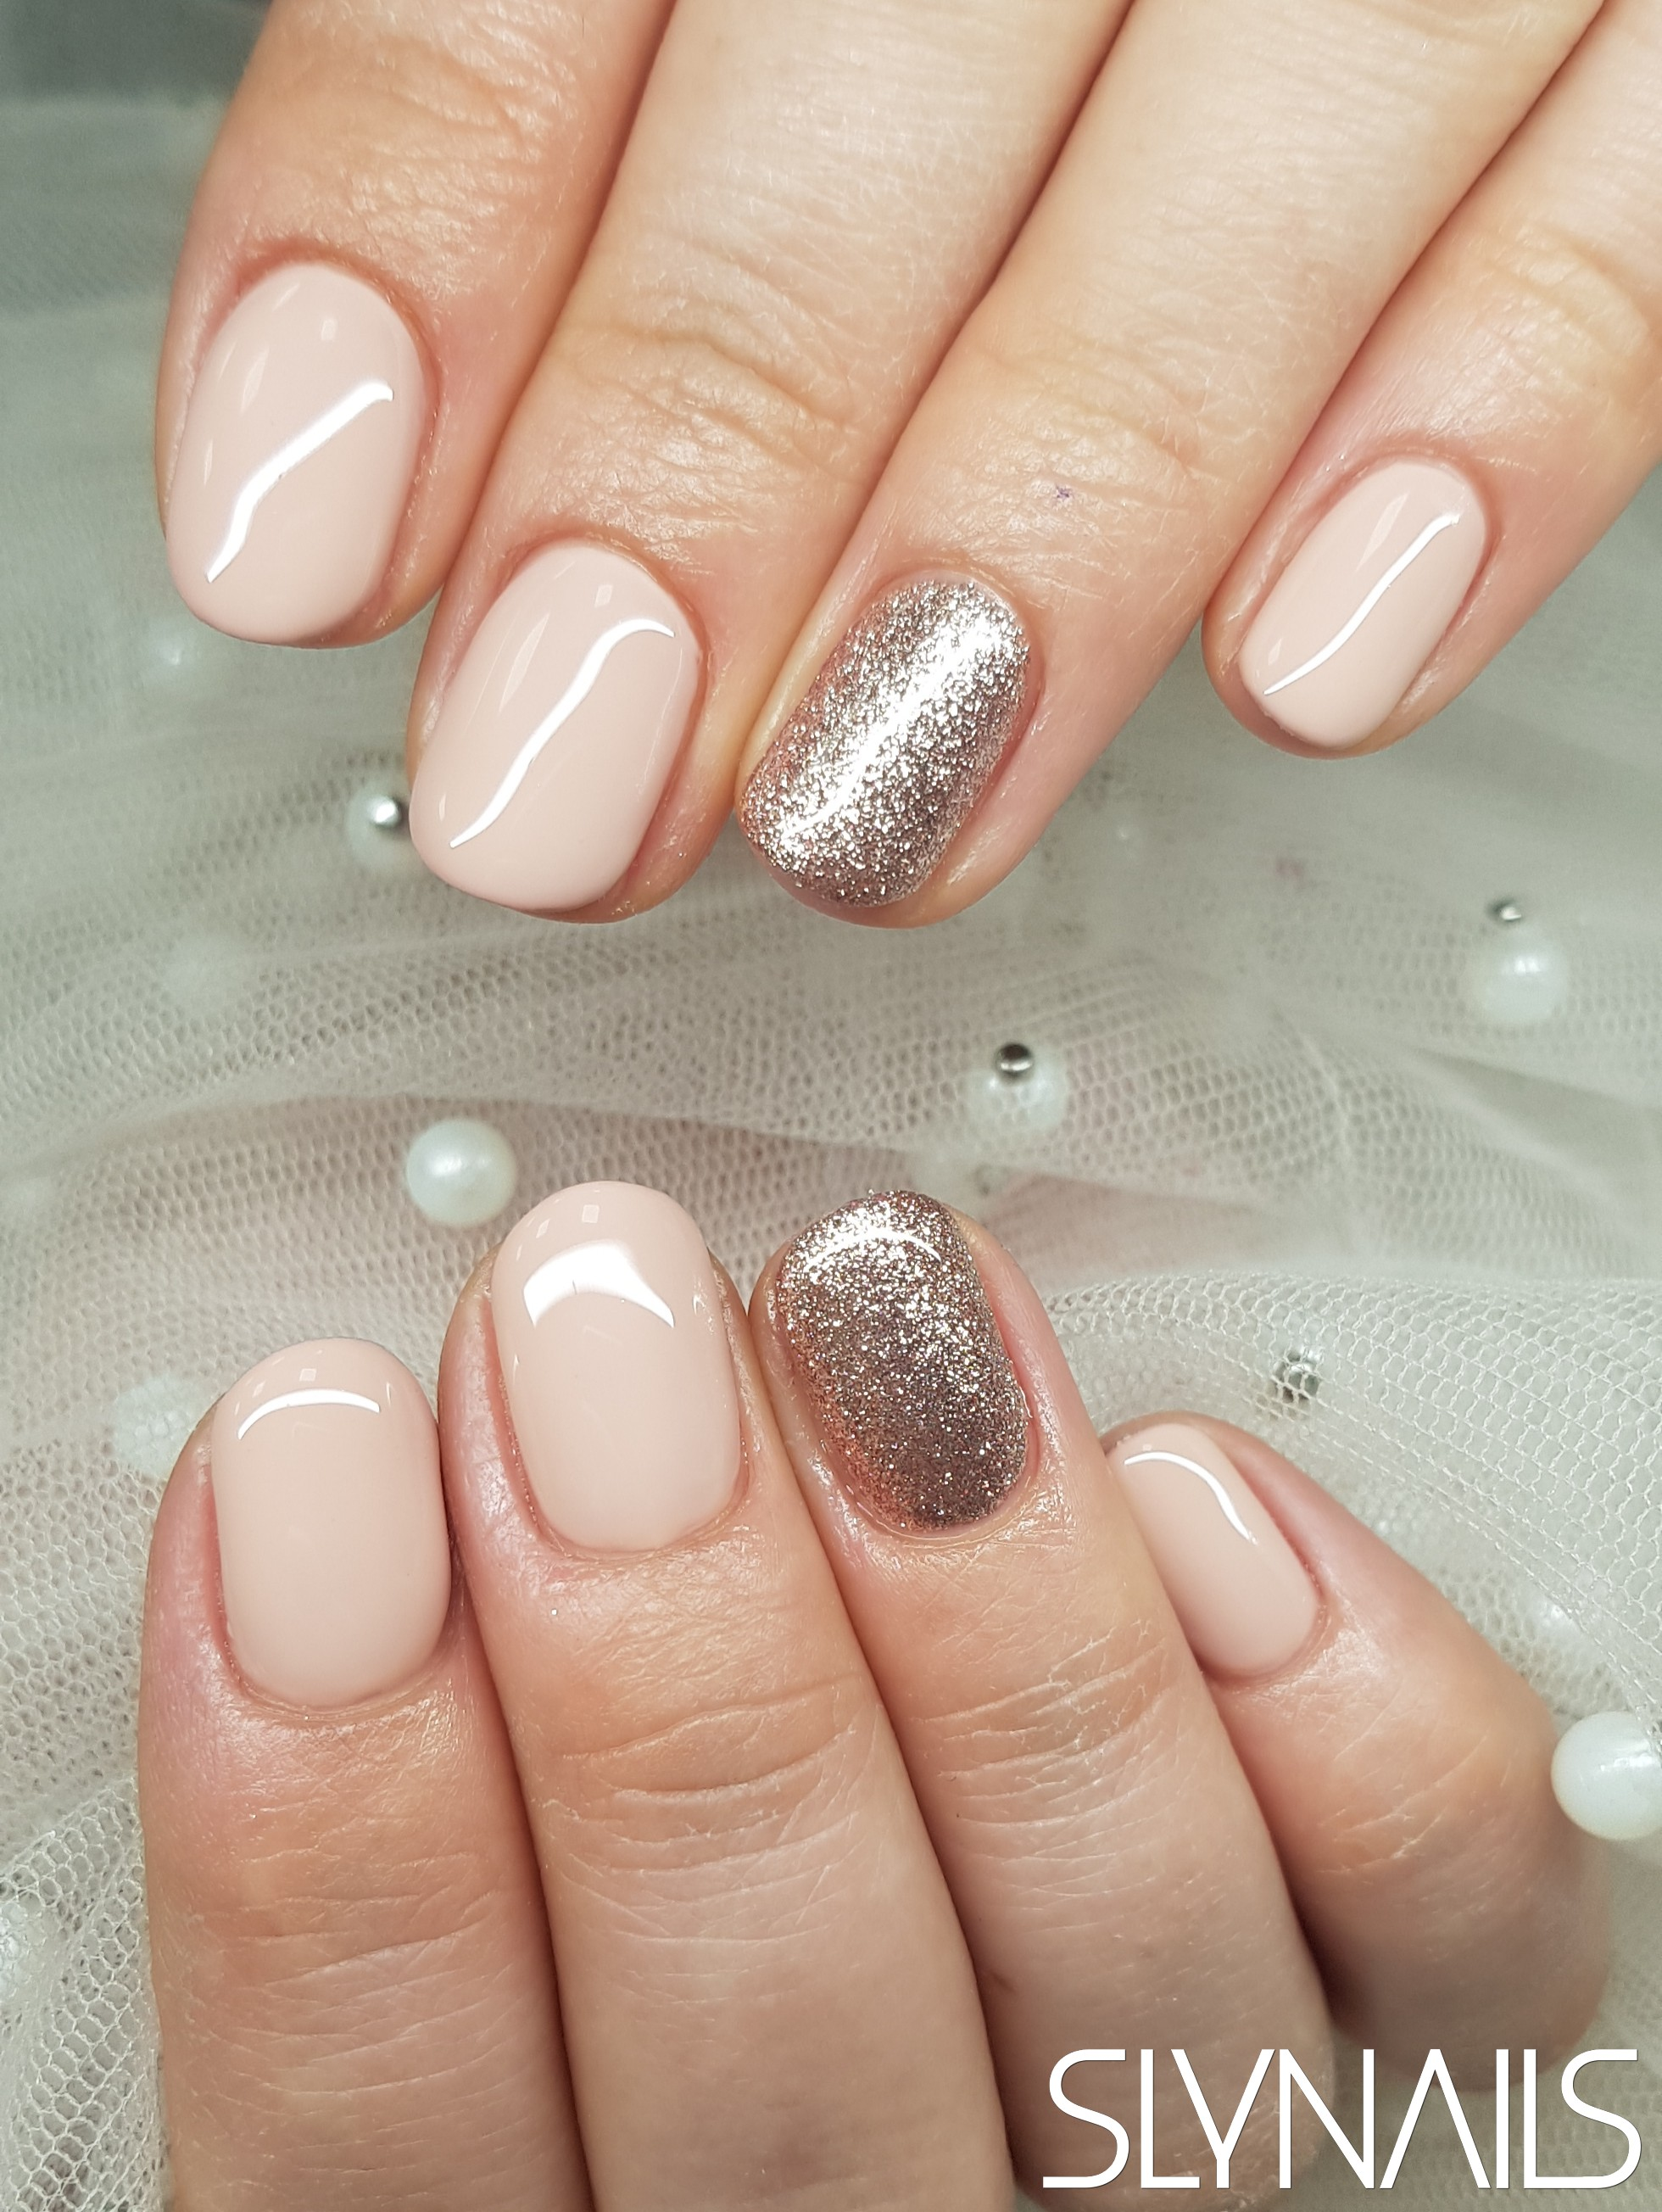 Gel-lac (gel polish), Nude, Gold, One color, Rounded, Without decoration